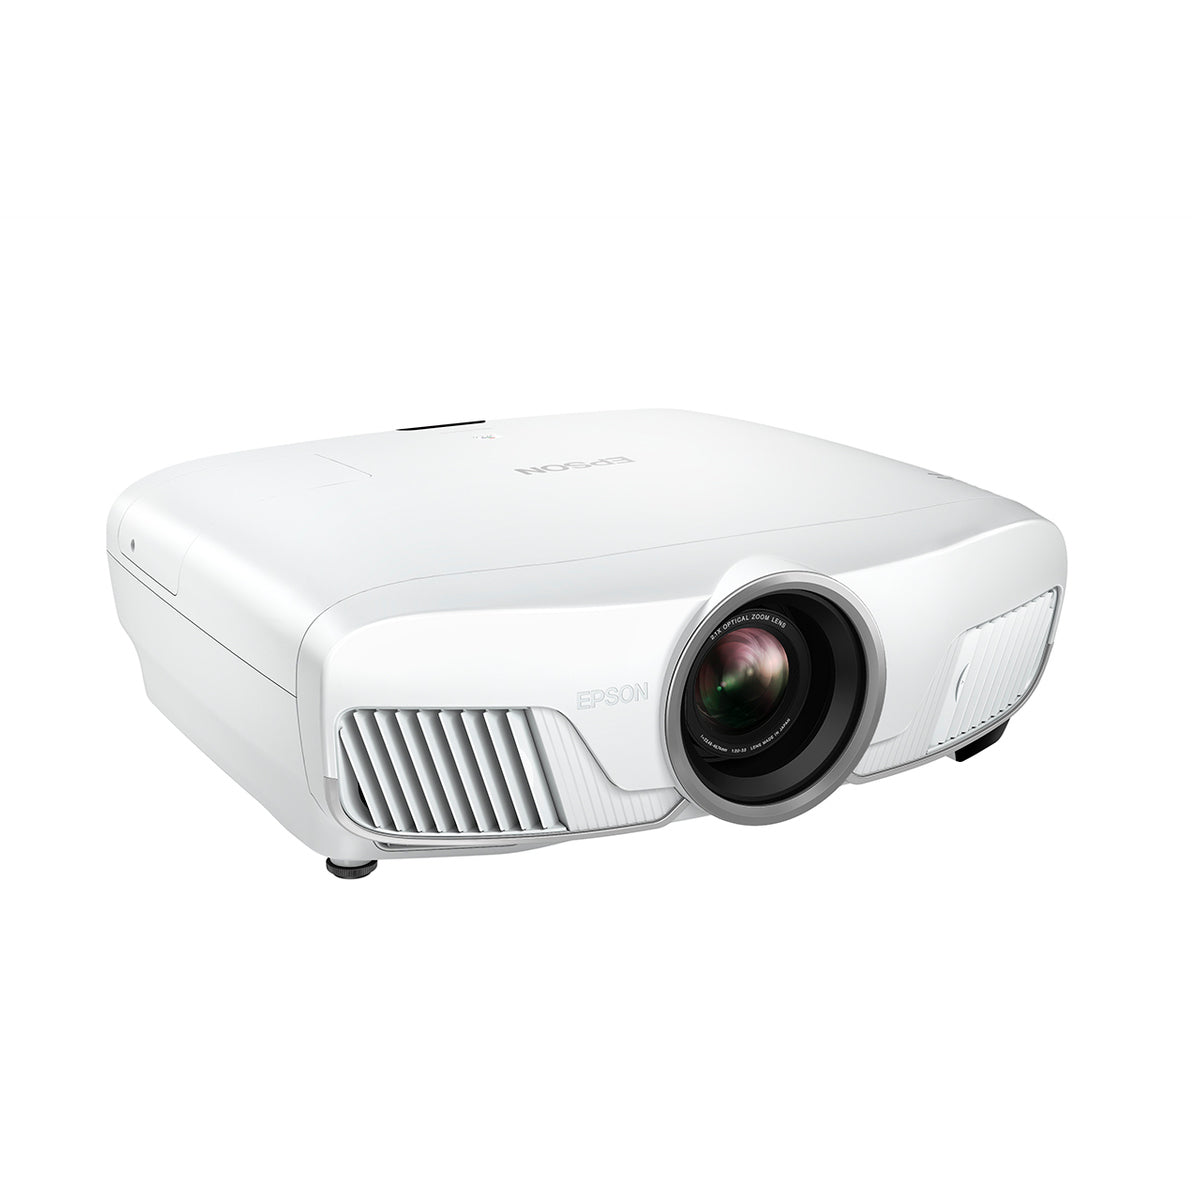 Epson EH-TW8300 (Home Theatre Projector) - AVStore.in